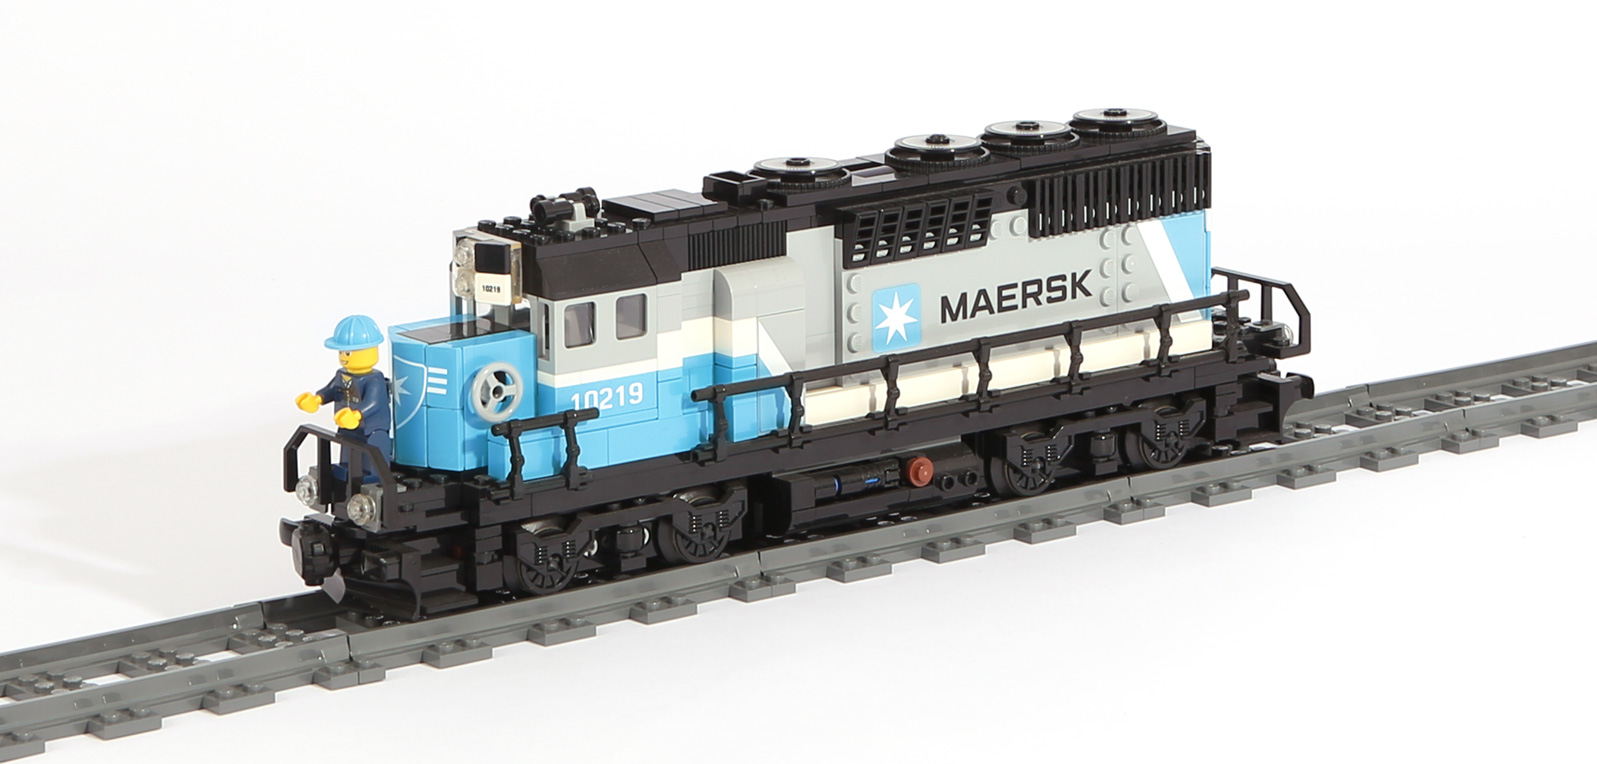 MAERSK GP60 – Original LEGO Set 10219